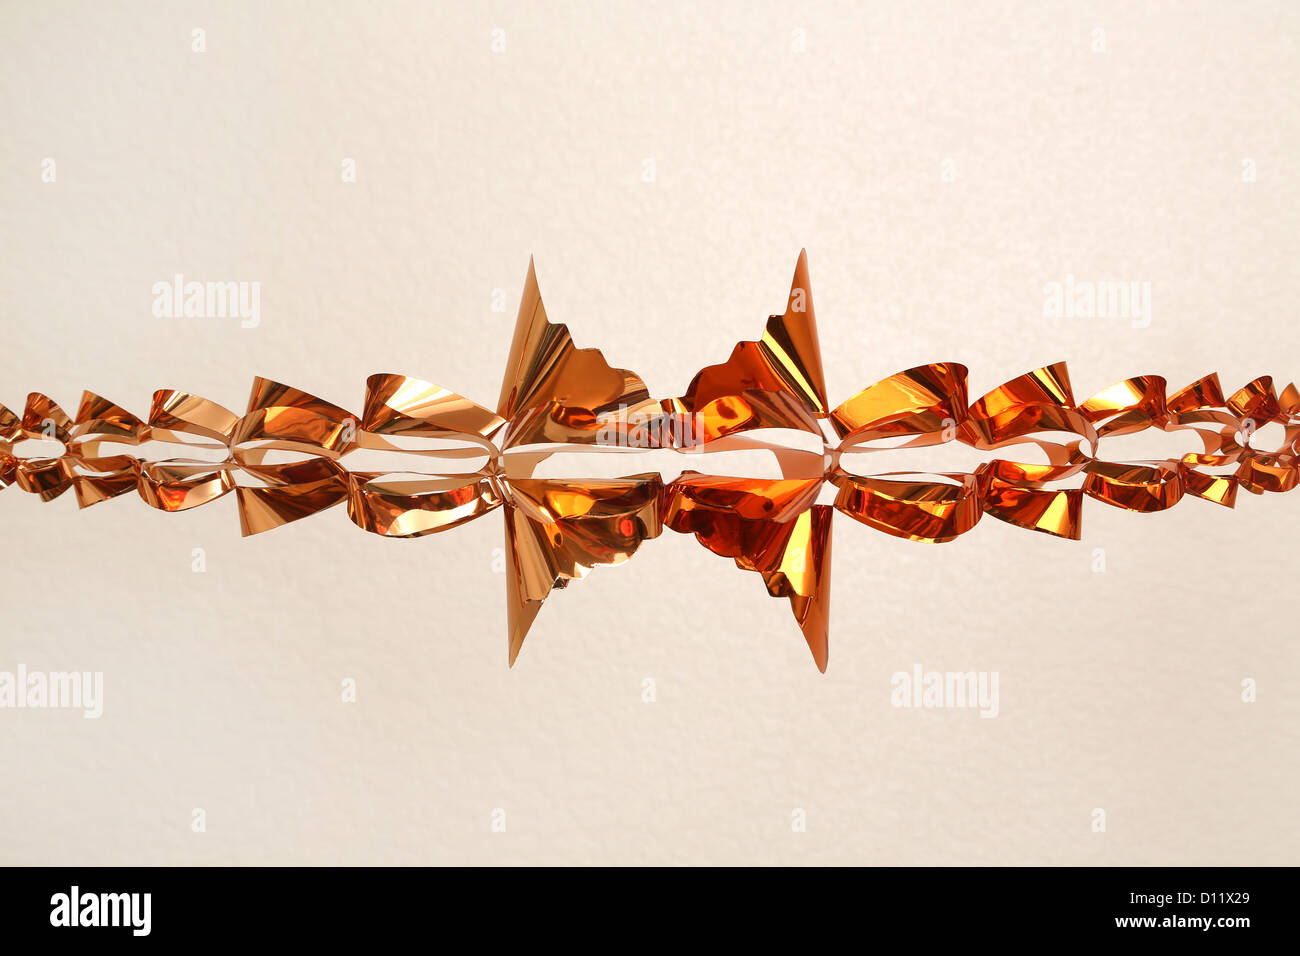 Copper Coloured Christmas Garland Decoration - Stock Image